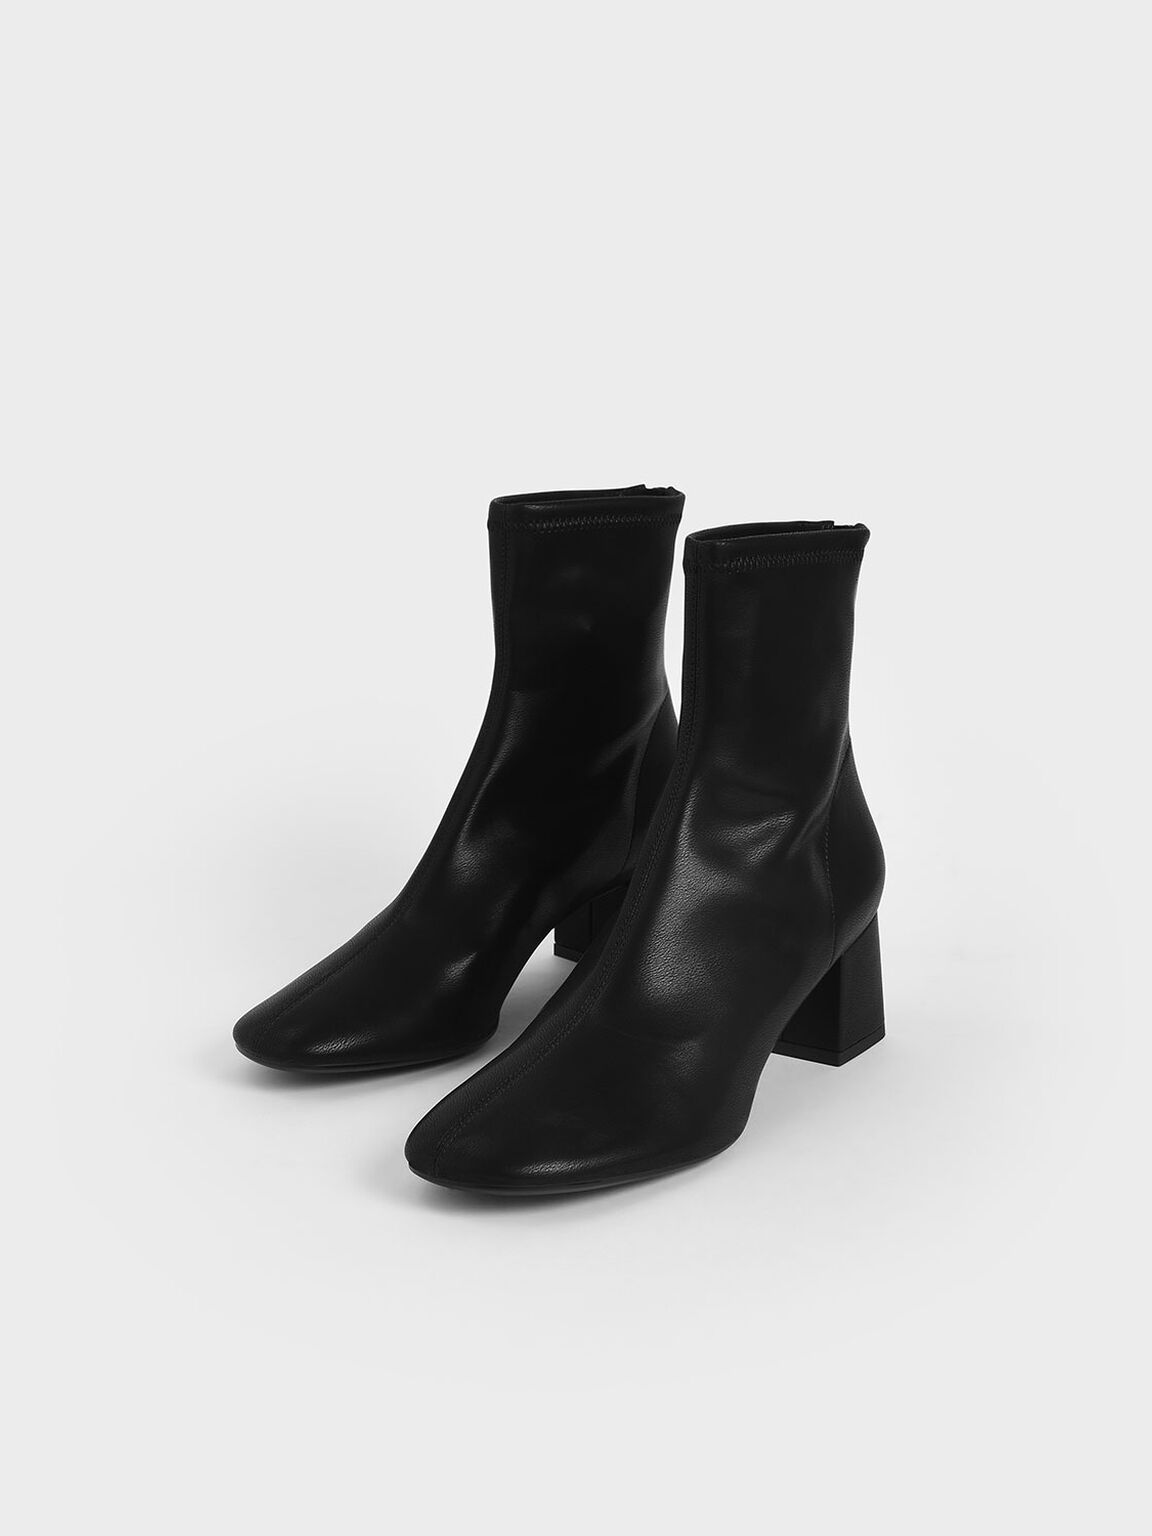 Stitch-Trim Block Heel Ankle Boots, Black, hi-res